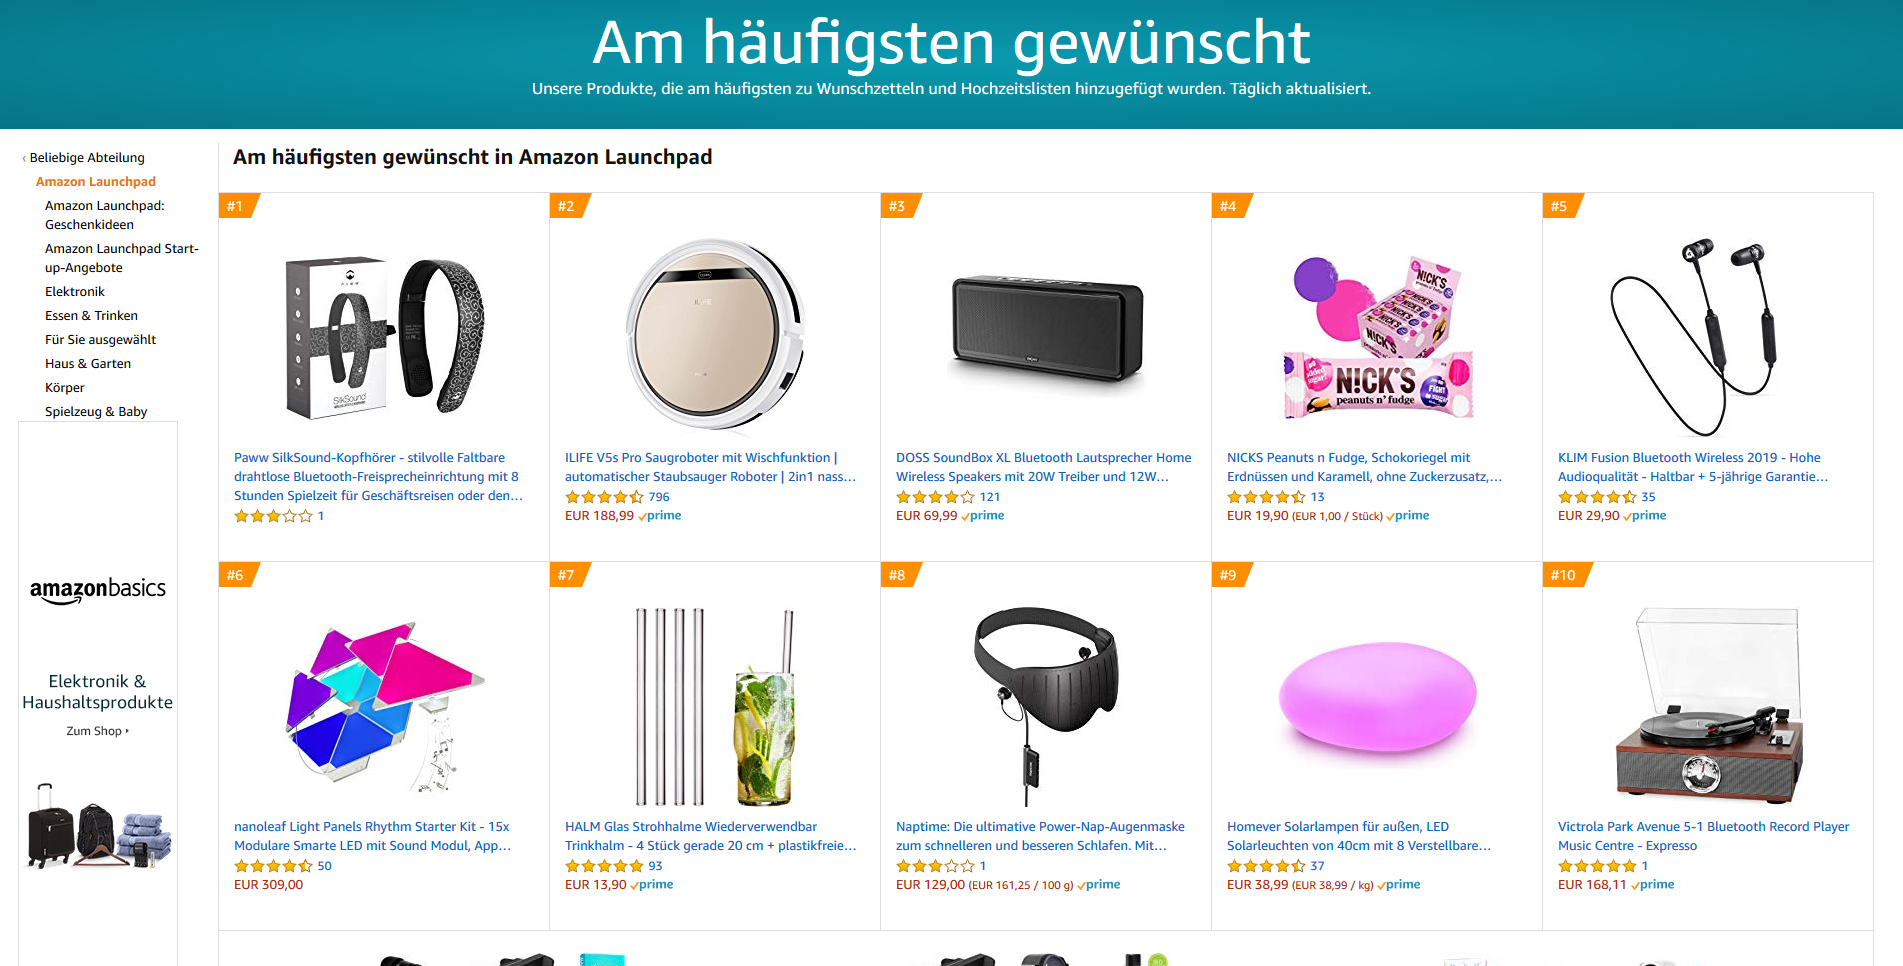 Shopping Trends DVD und Blu-ray